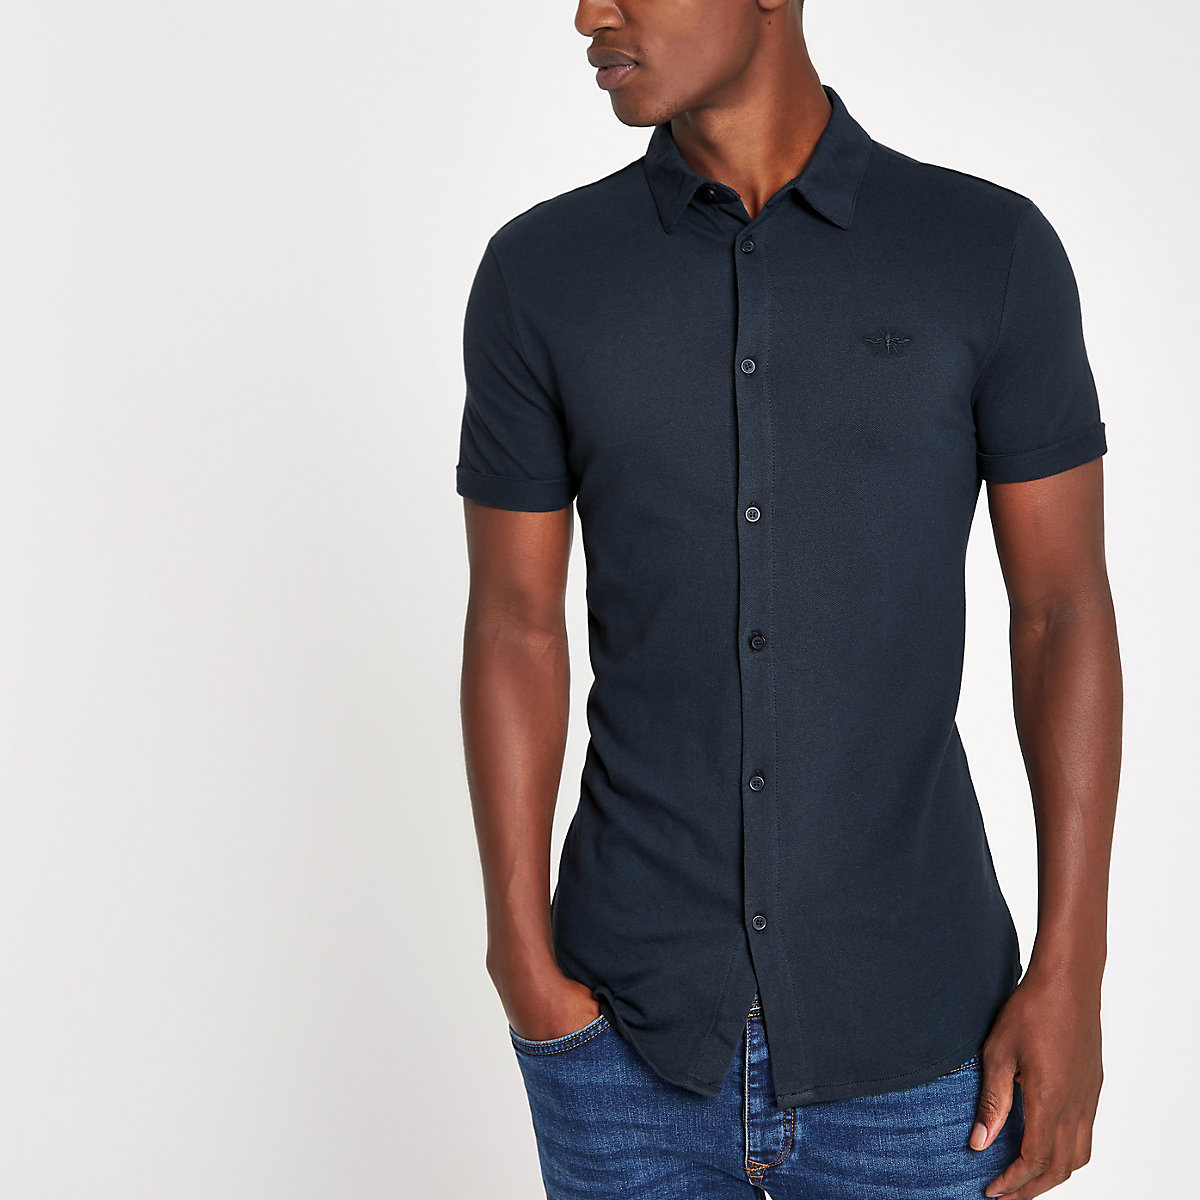 Navy muscle fit button through polo shirt